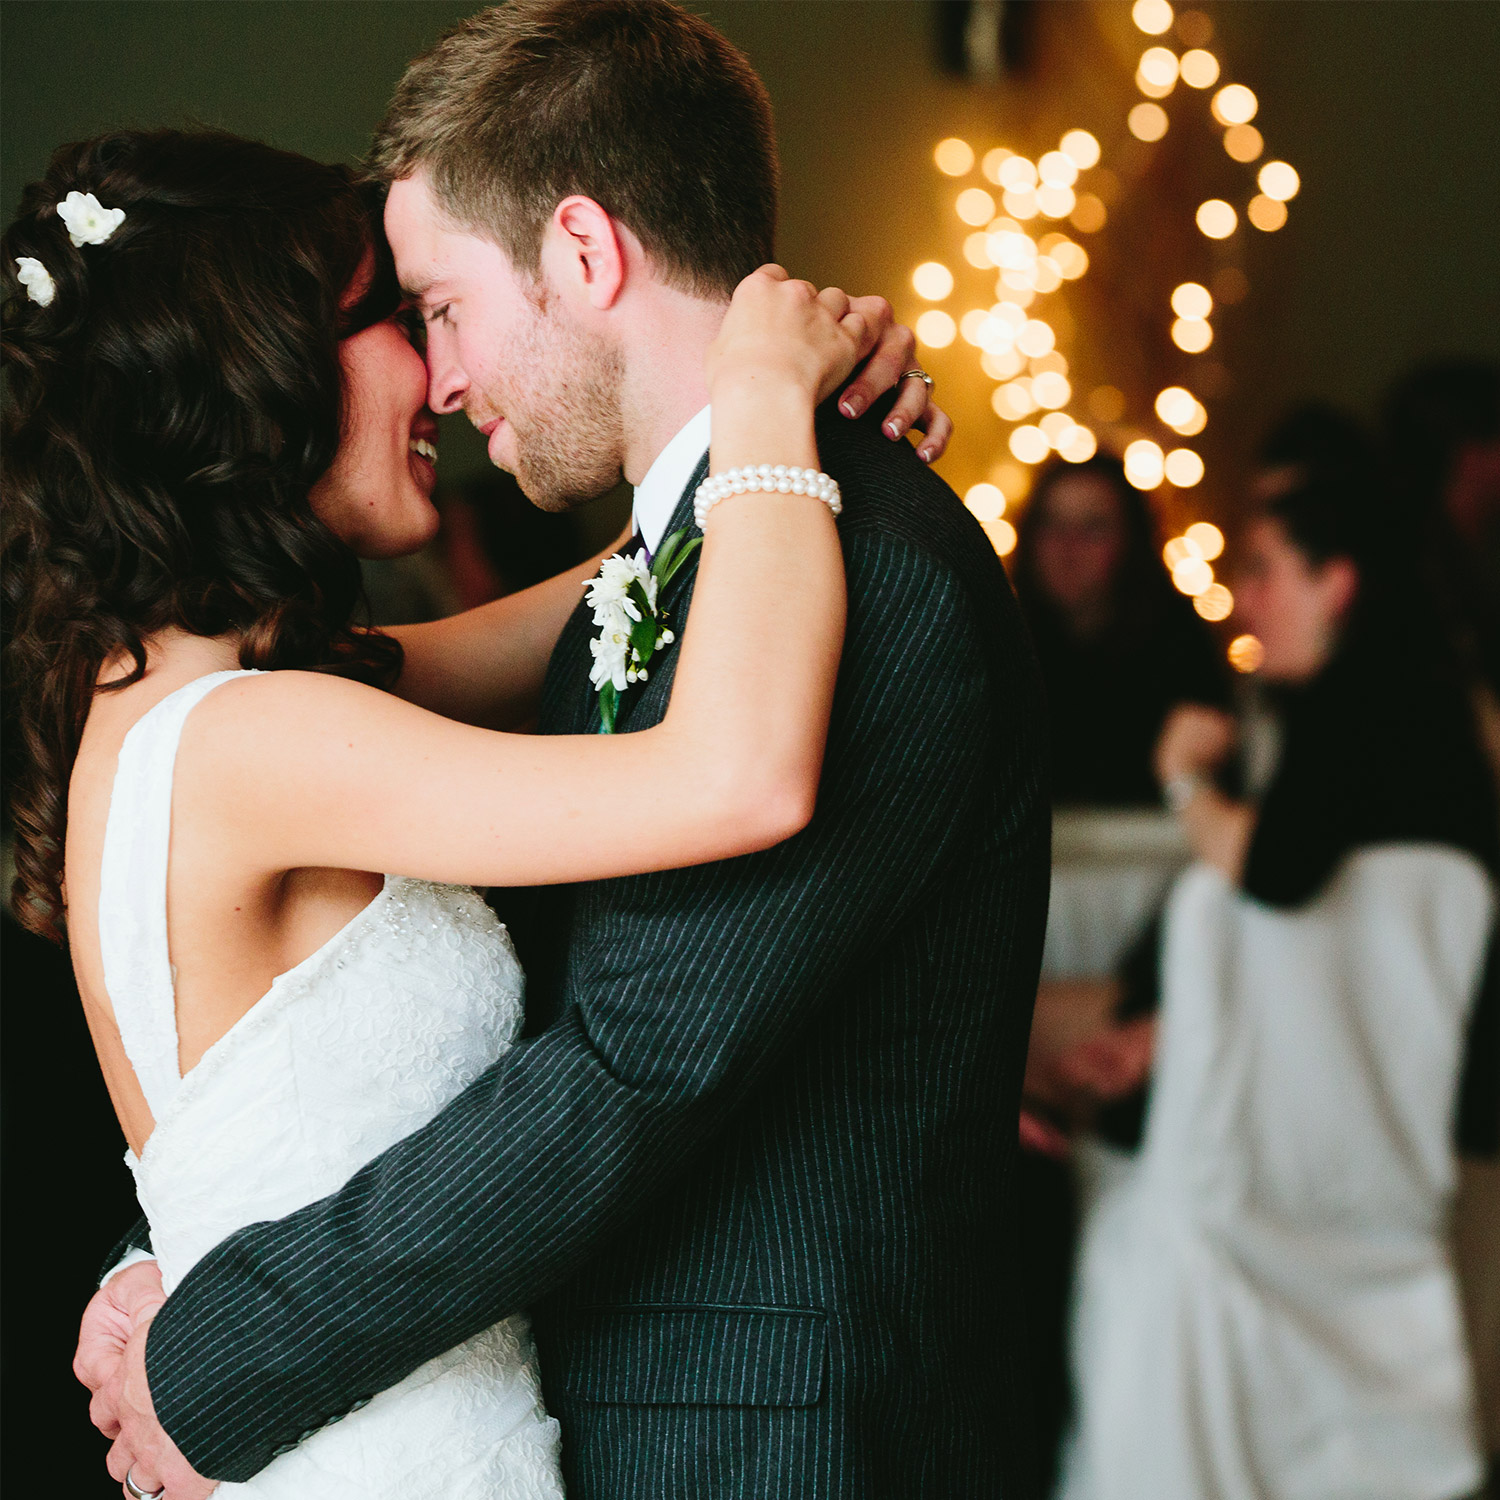 large wedding reception at whitefish lodge and suites, crosslake, mn